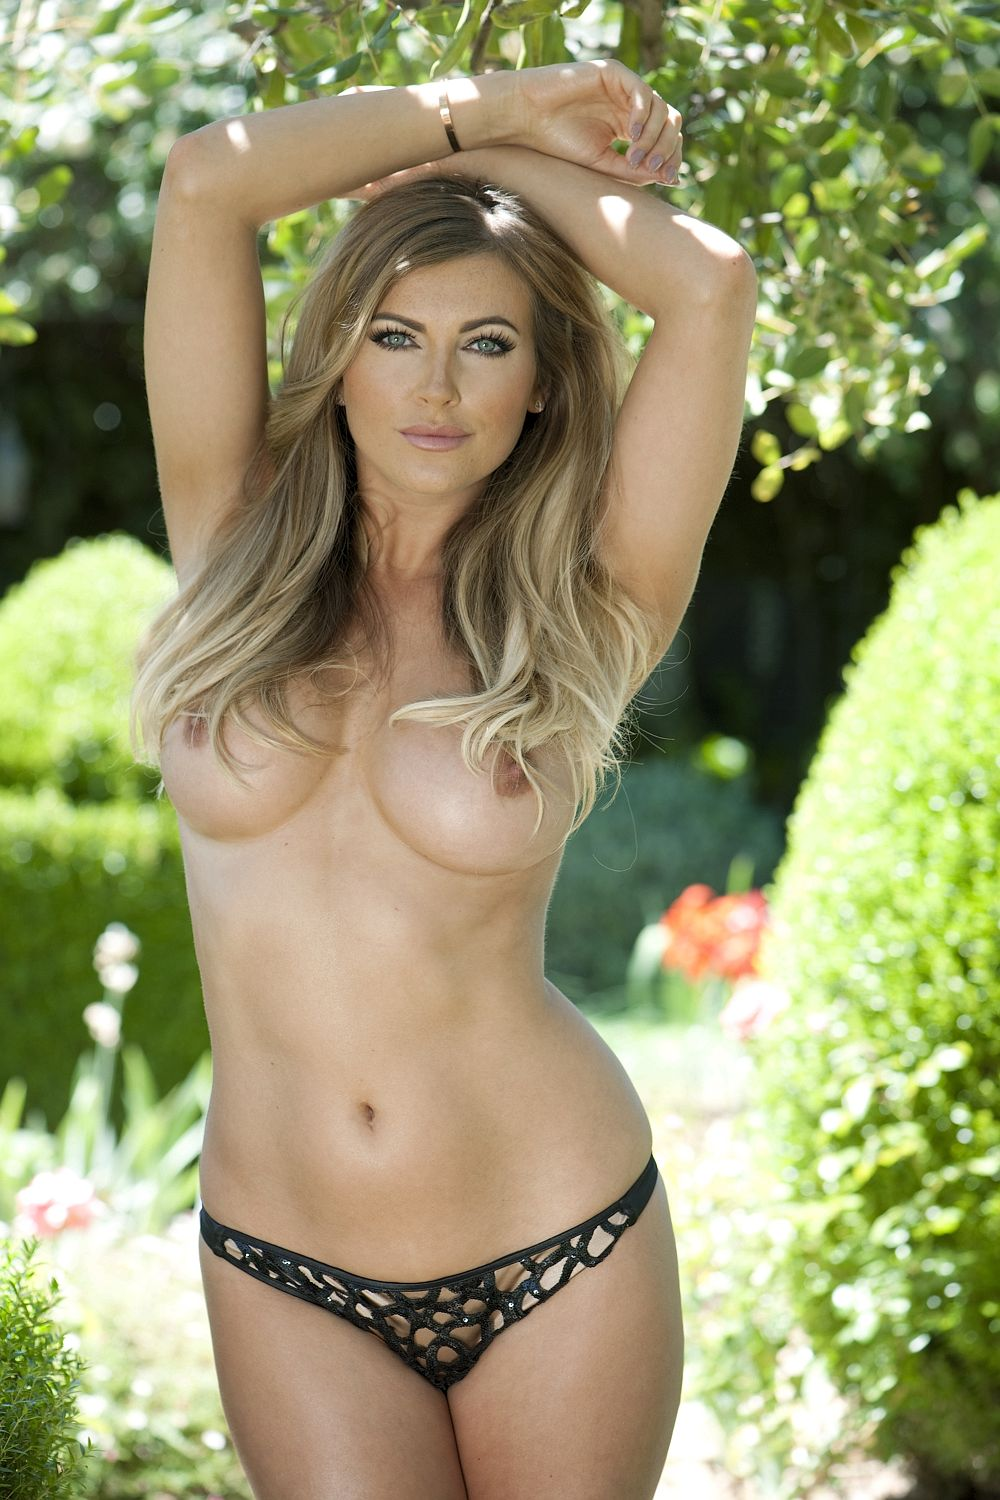 Sam-Cooke-Topless-3